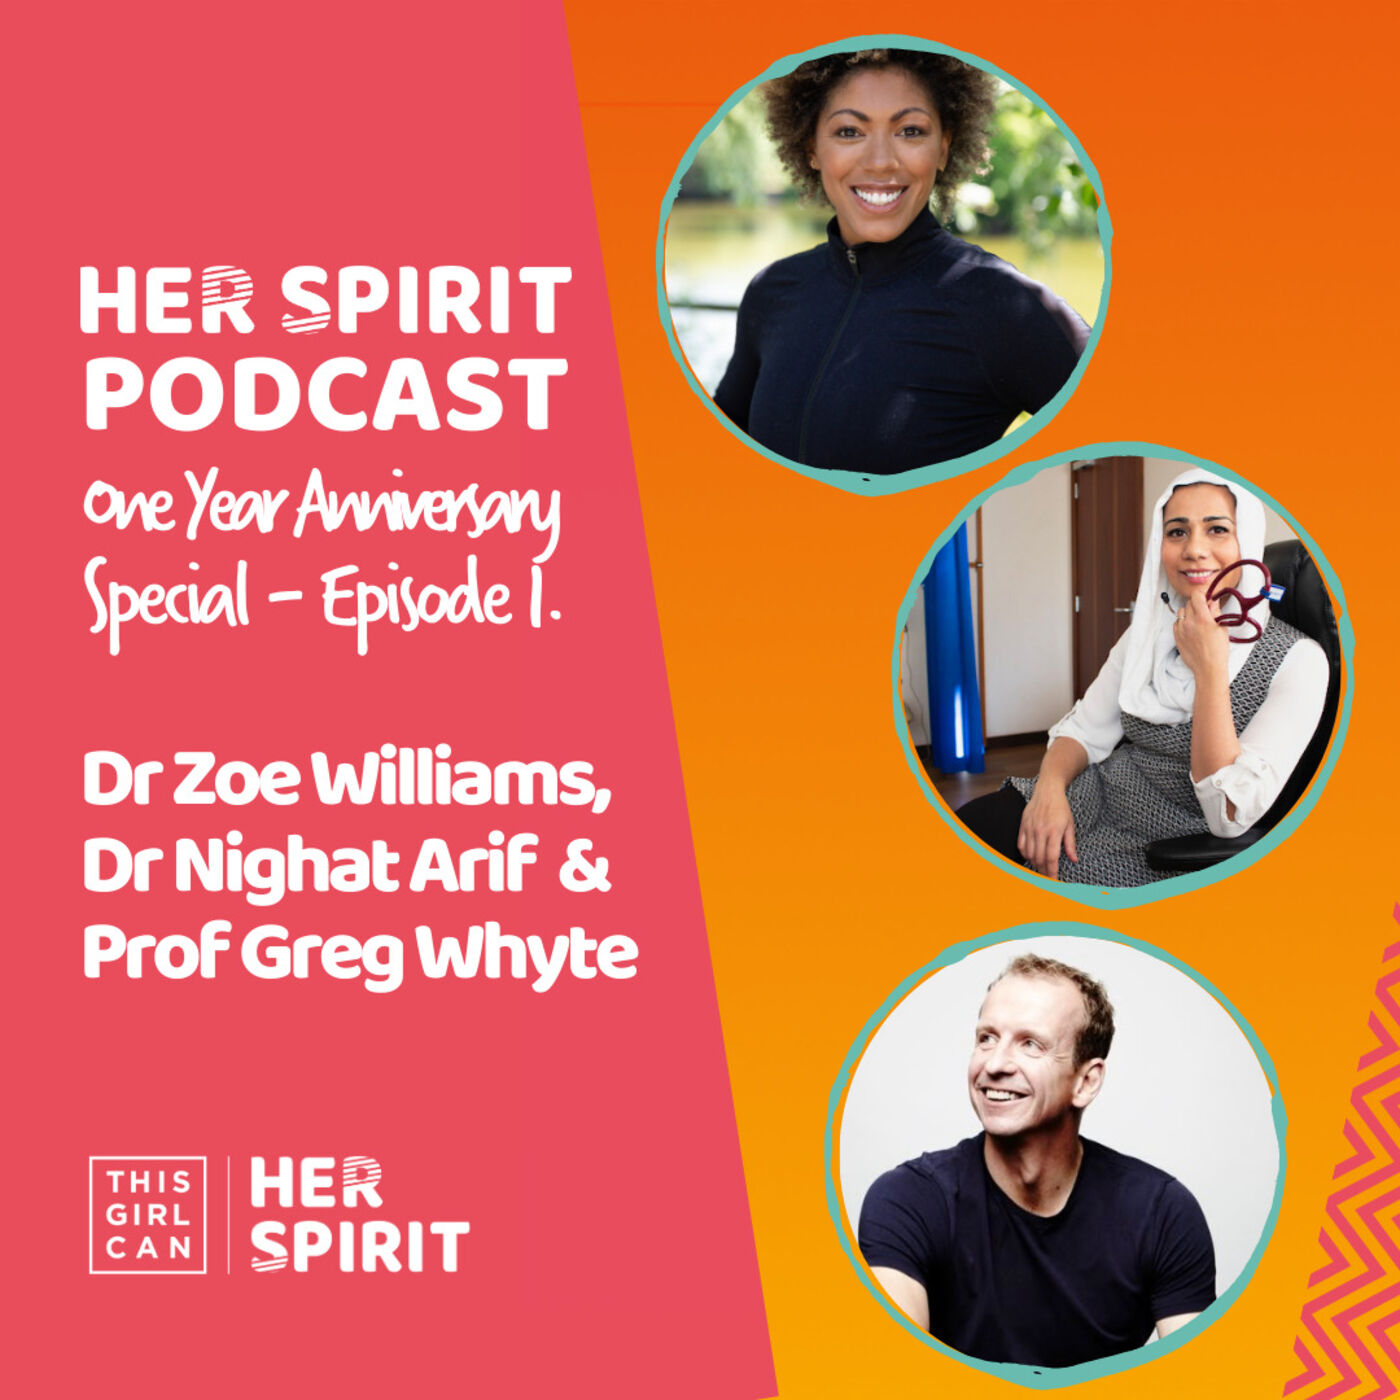 Louise and Annie host the first of two anniversary Her Spirit episodes. Dr Nighat Arif, Dr Zoe Williams and Prof Greg Whyte talk about life over the last twelve months and predictions for the years ahead